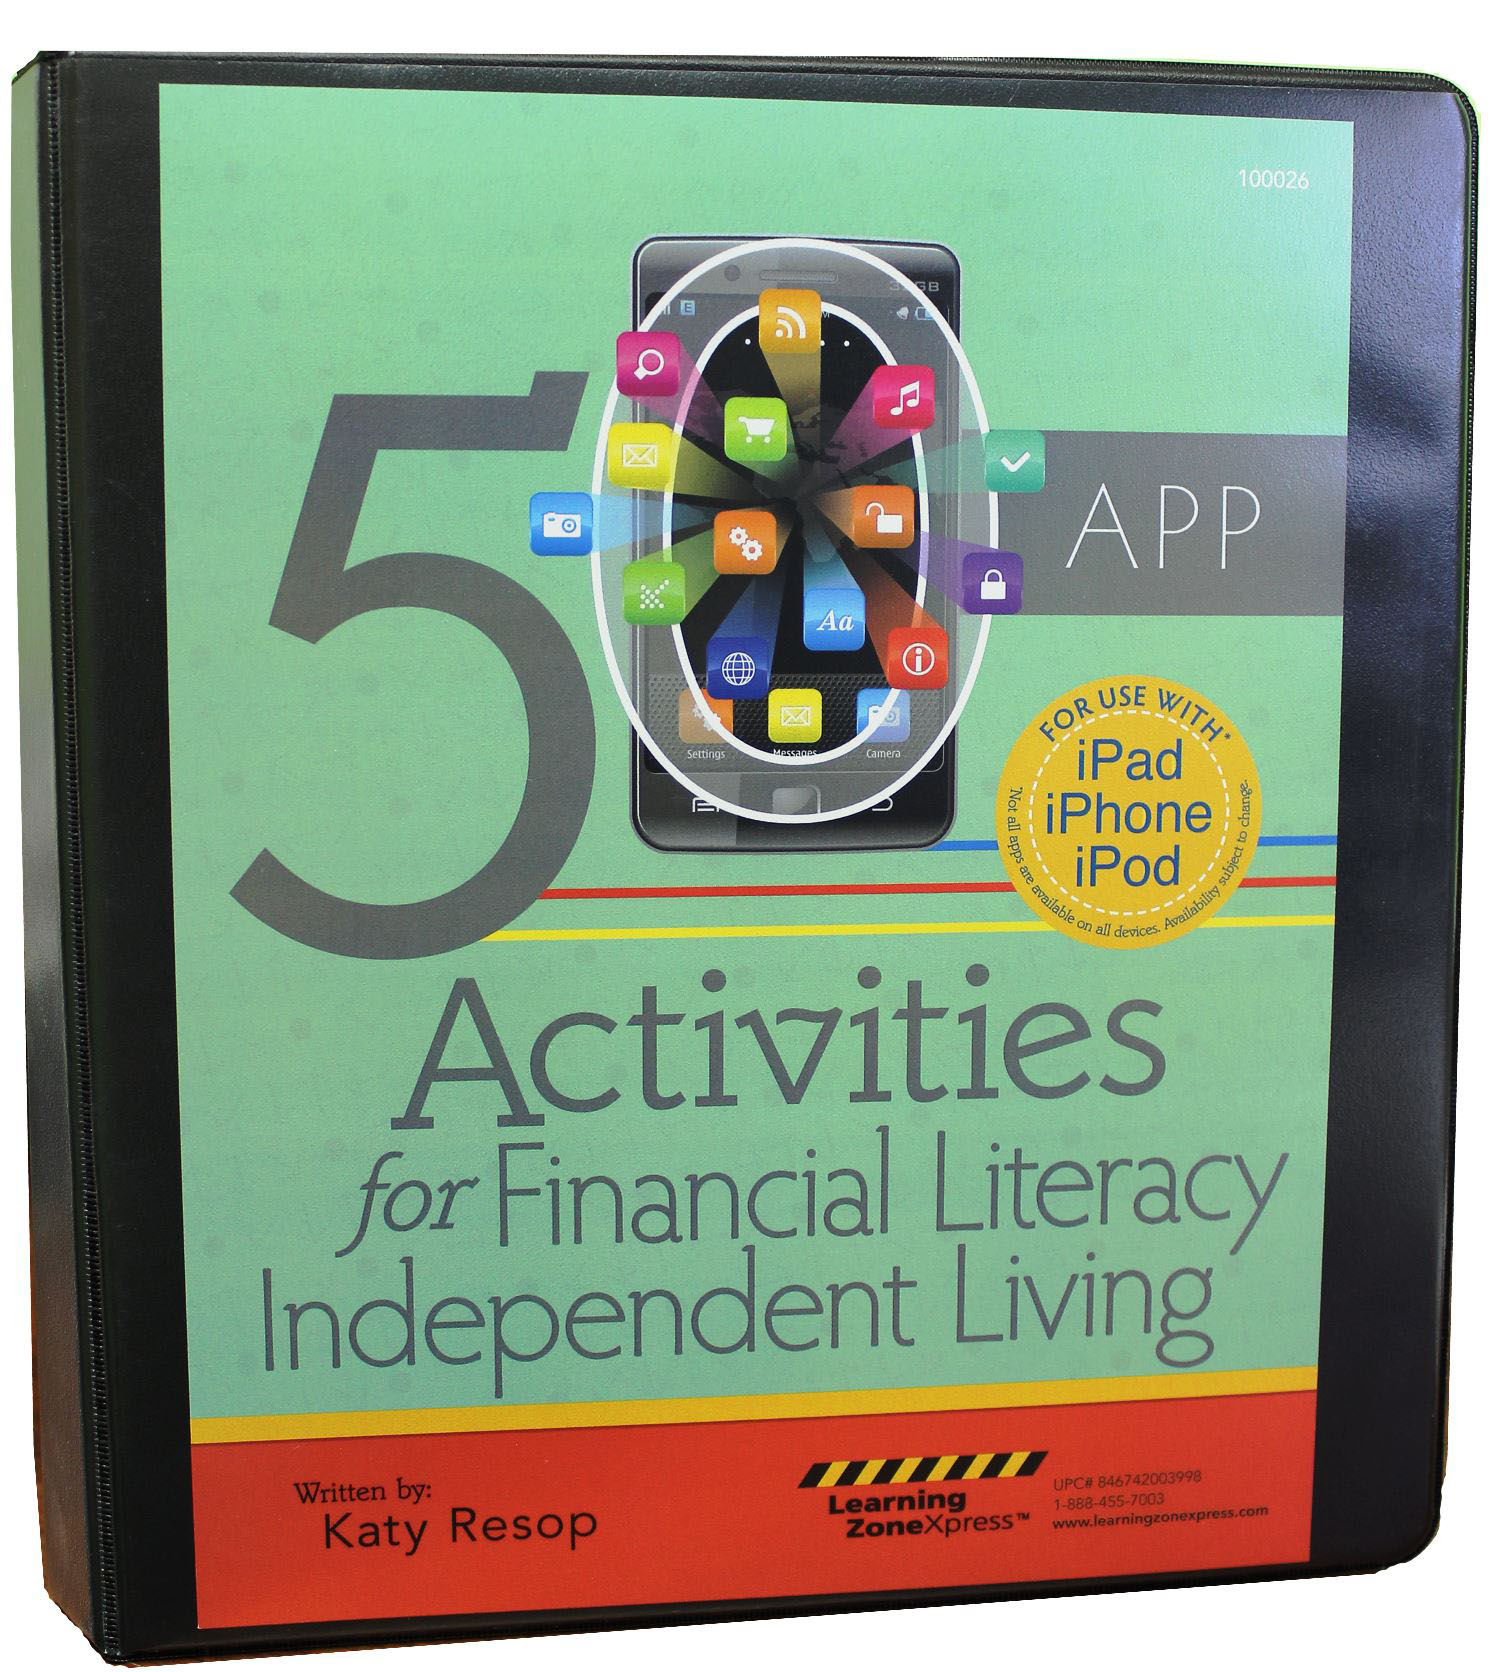 50 App Activities for Financial Literacy and Independent Living ~ DOWNLOAD